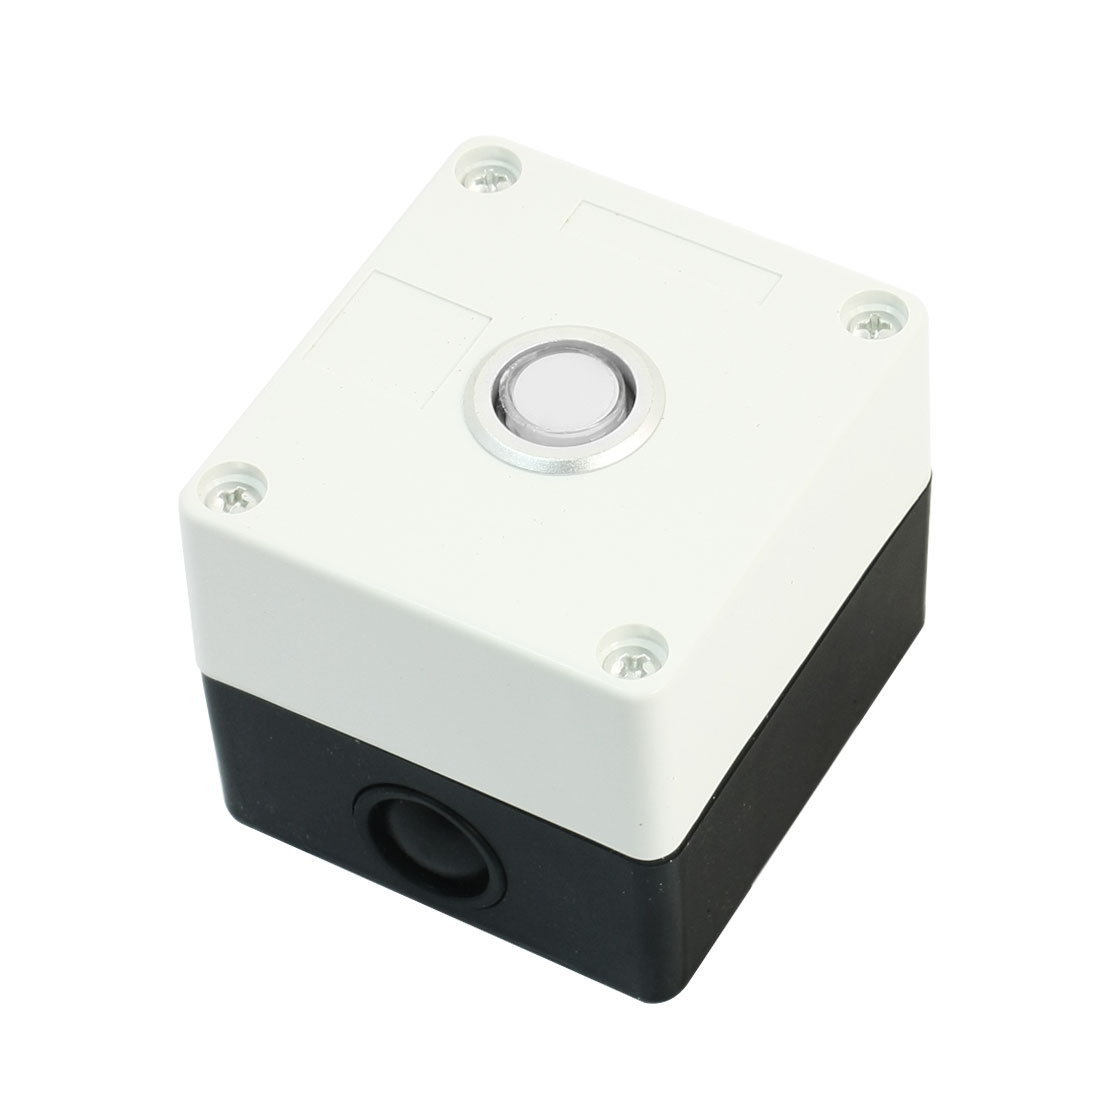 DC12V 22mm Thread Panel Mount SPDT 1NO 1NC 5-Pin Self-Locking Warm White Lamp Push Button Control Station